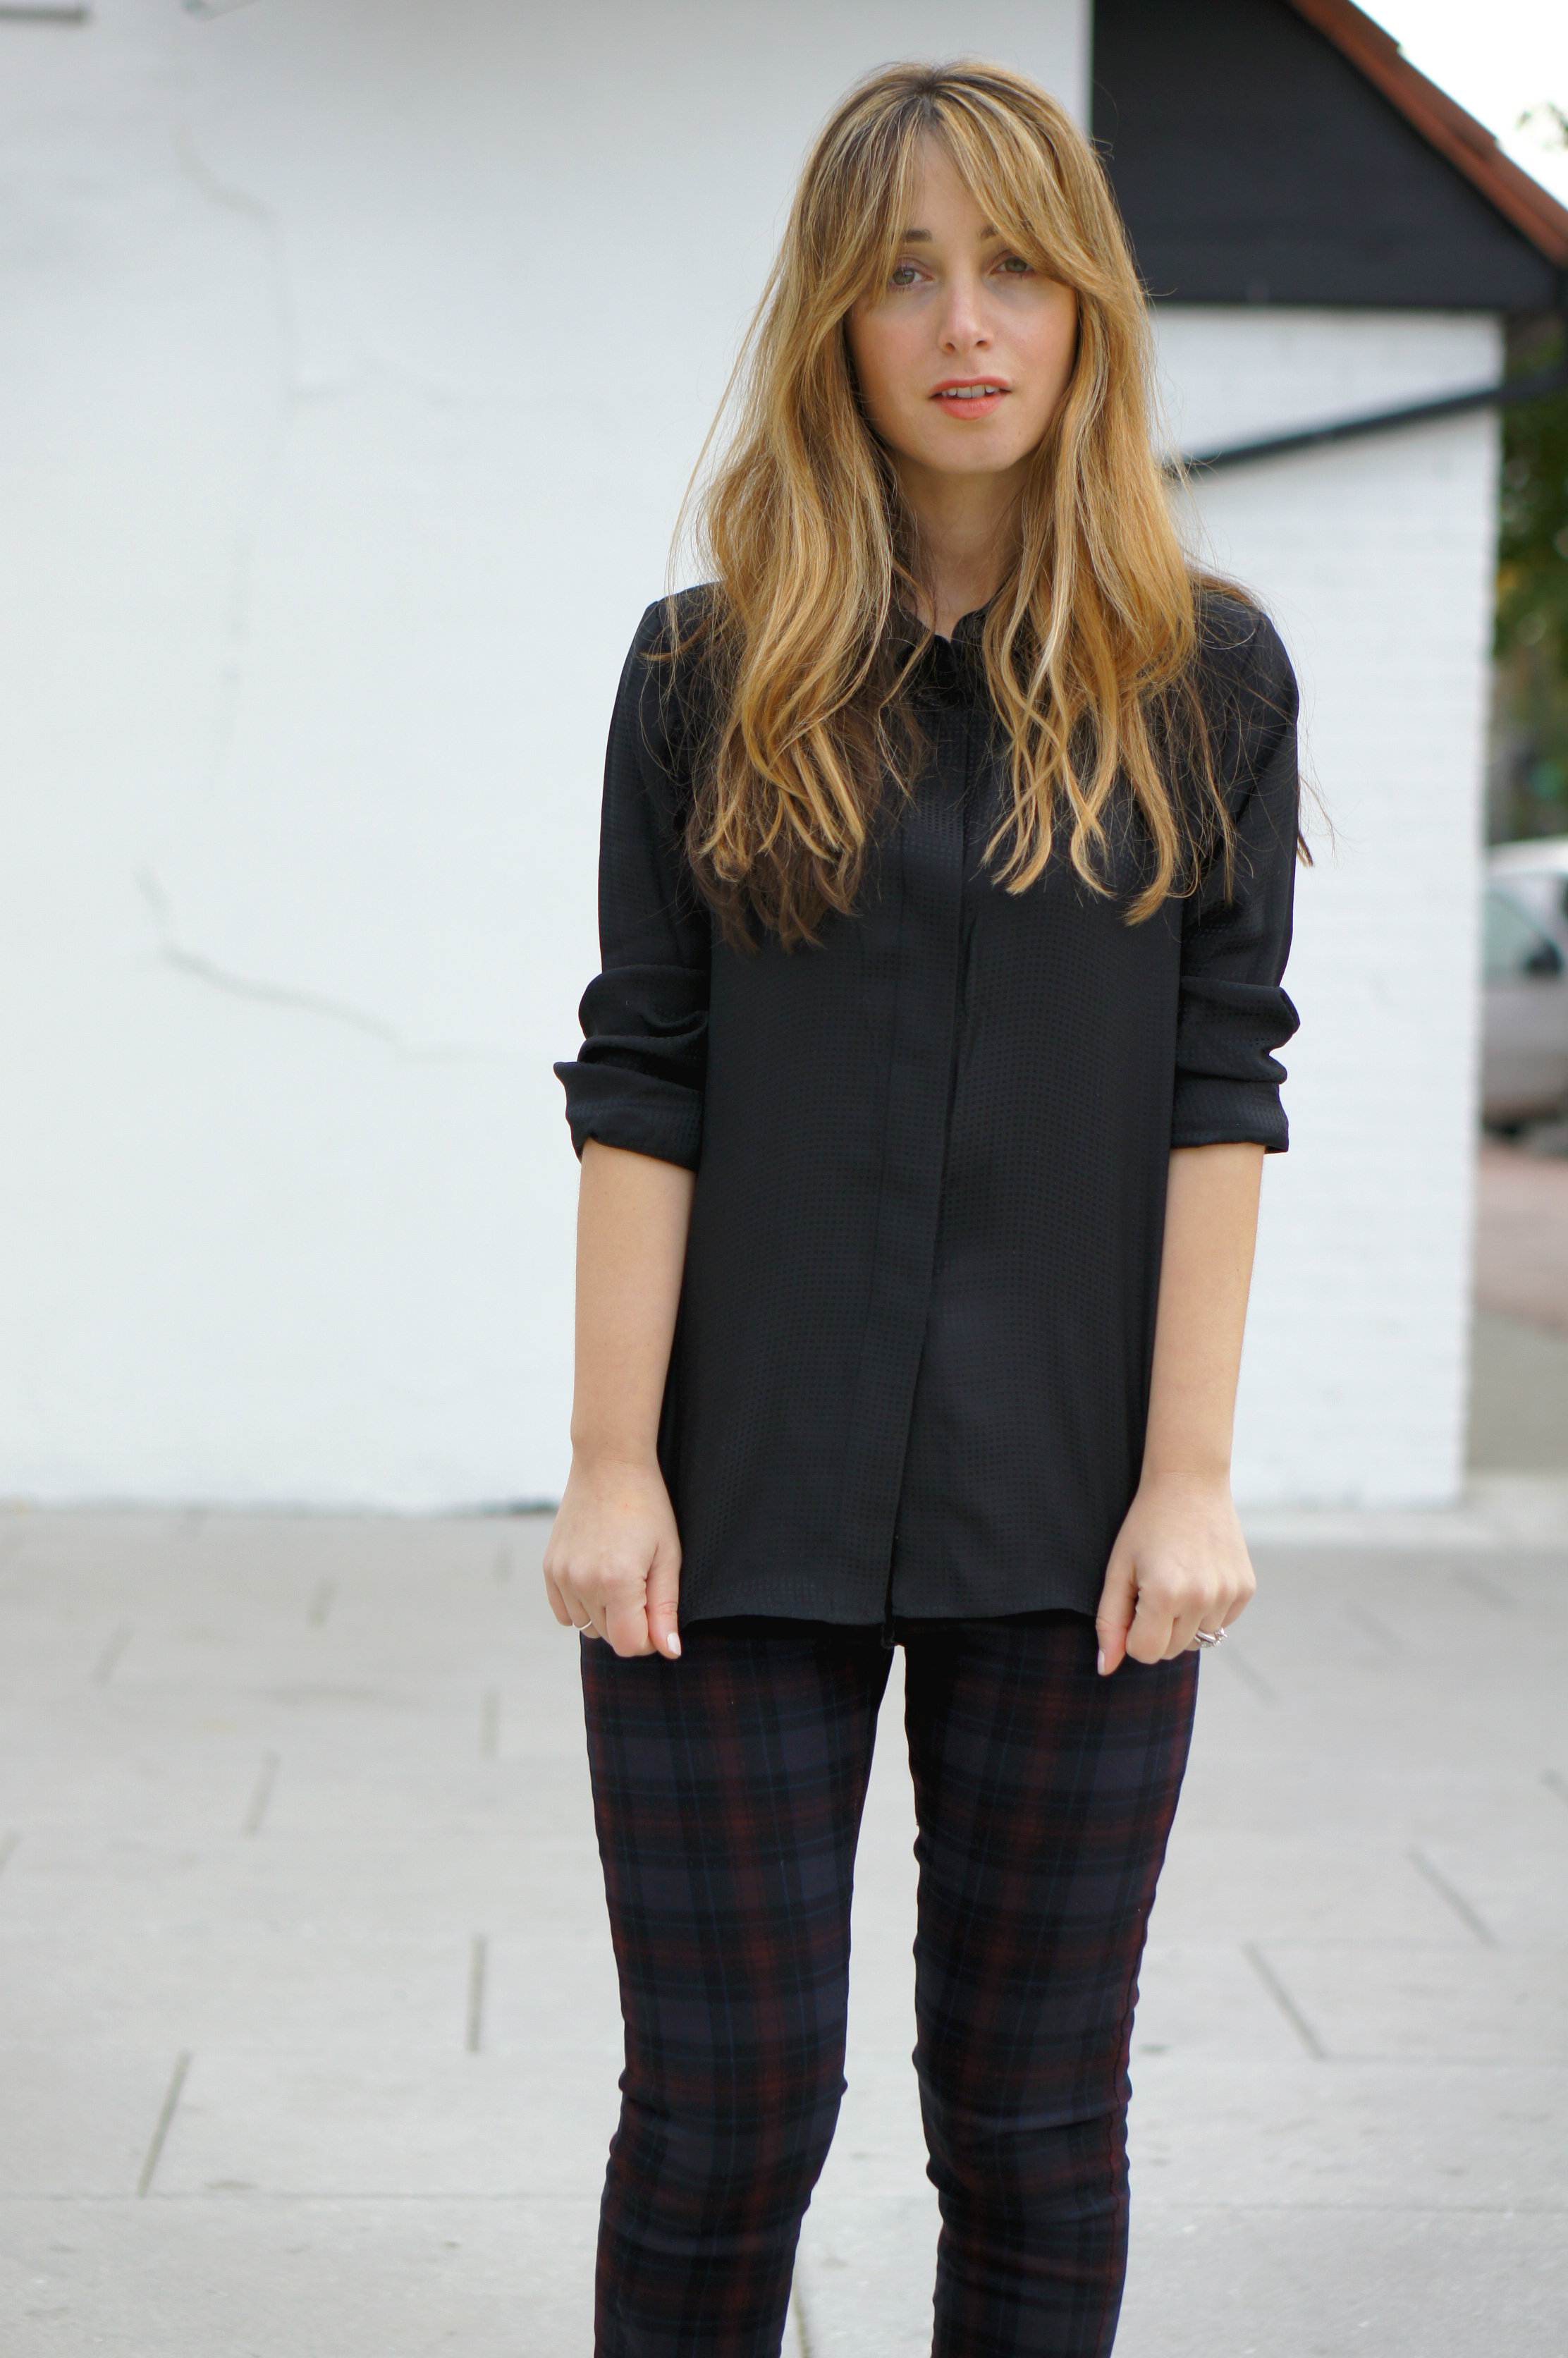 plaid, plaid trousers, blankNYC, pumps, Theory, blouse, fall style, street style, style, fall